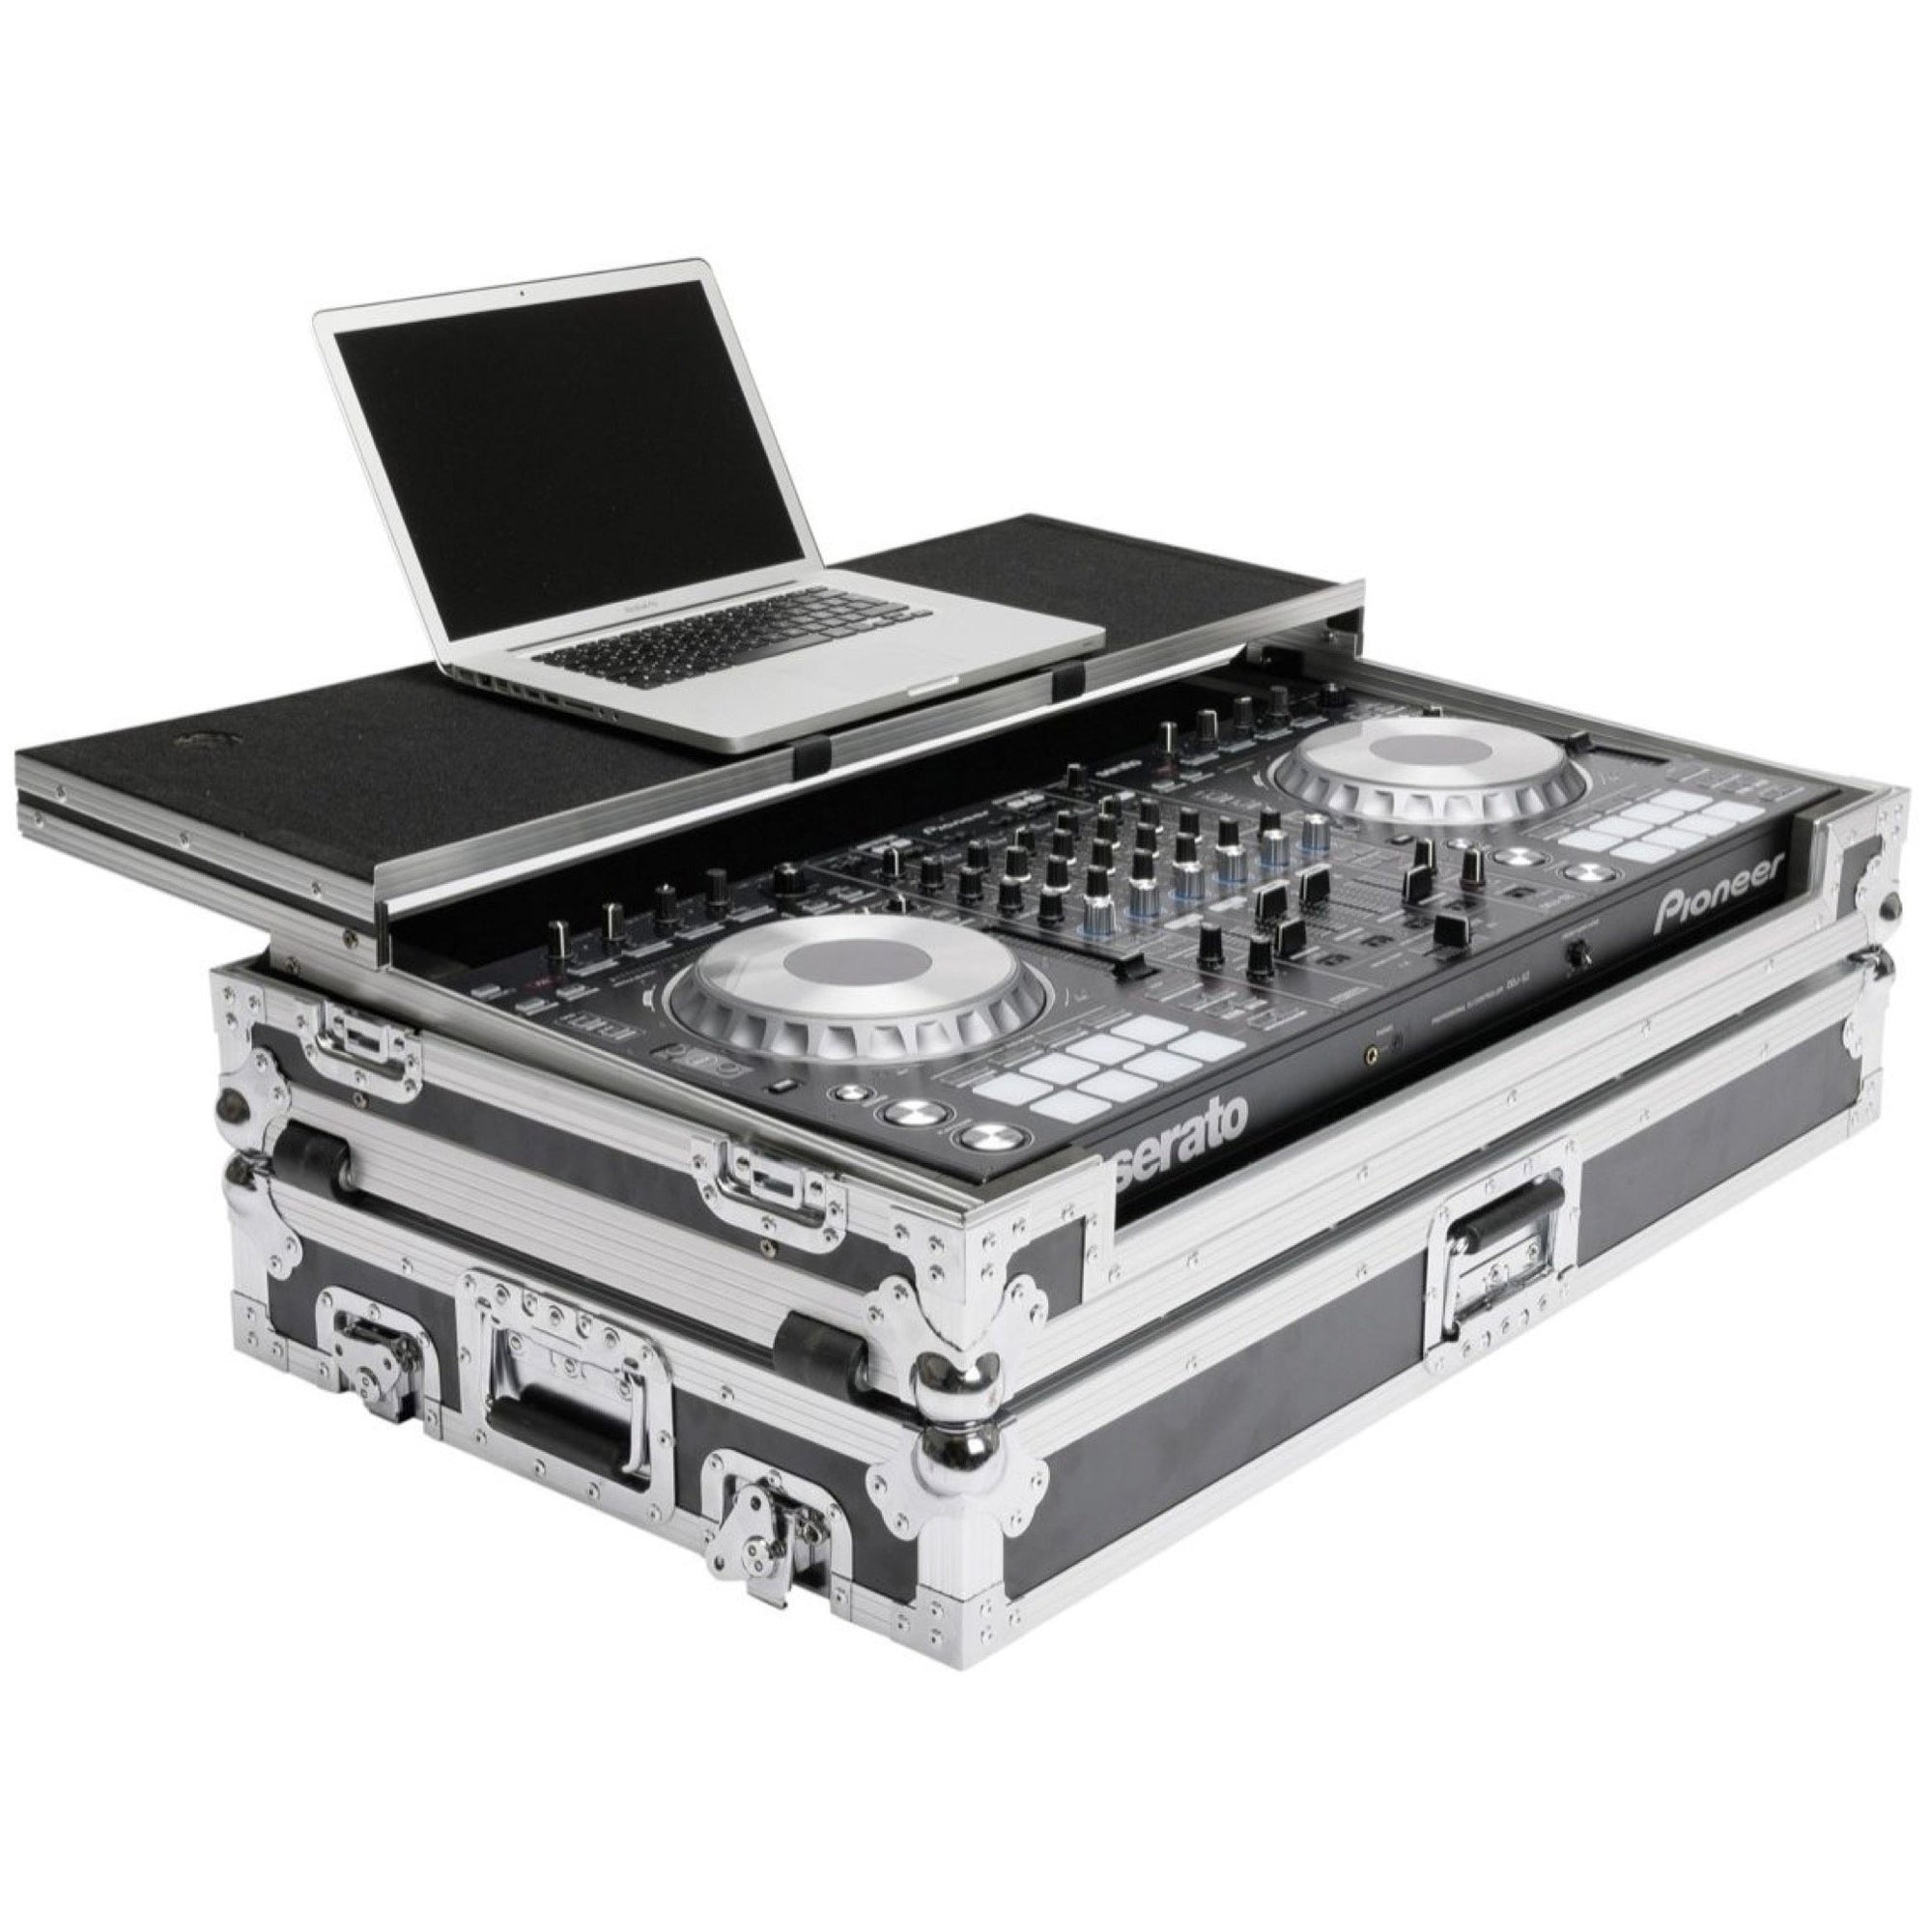 Magma DJ Controller Workstation Case for DDJ-SZ2 and NS7III